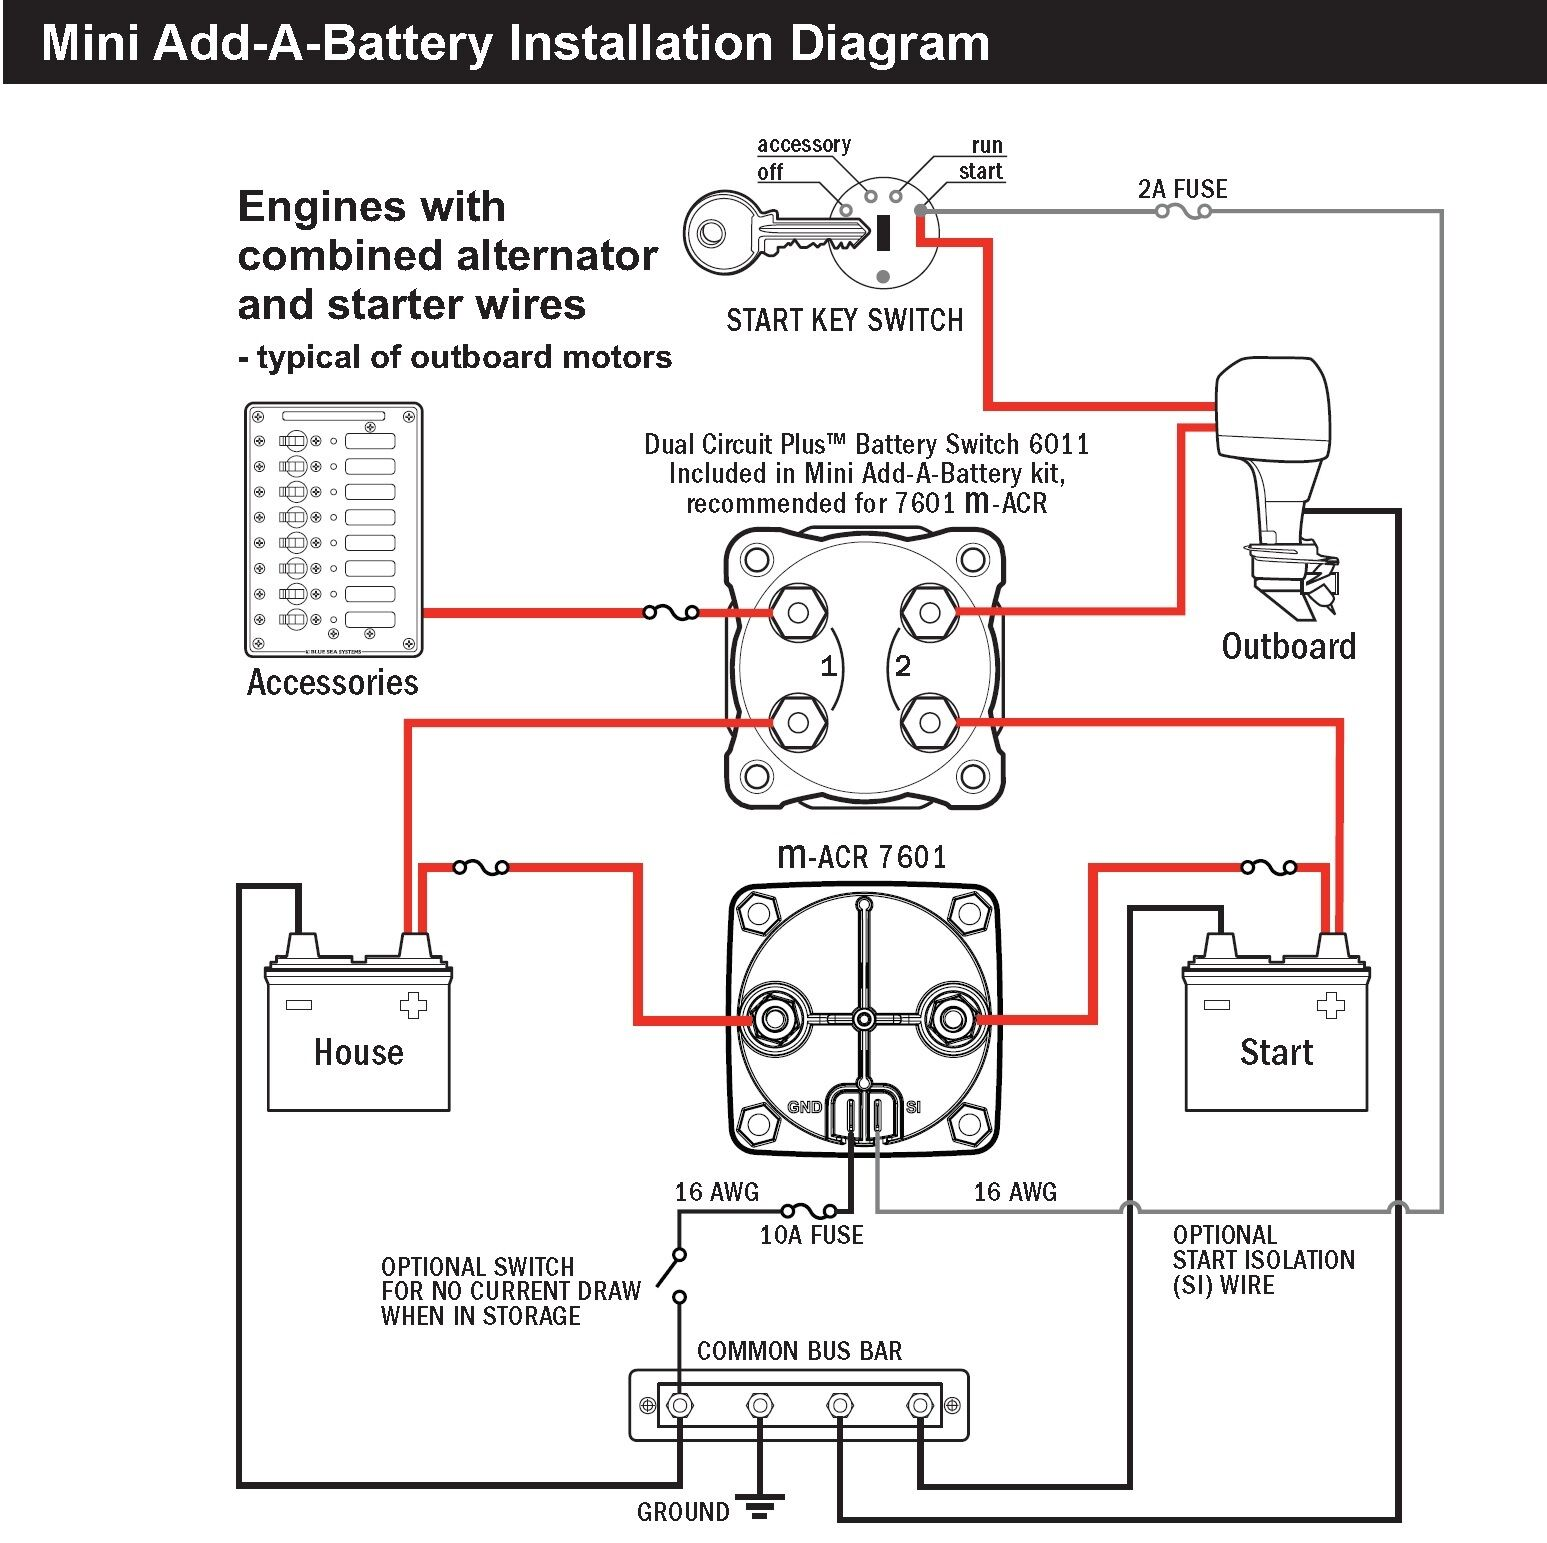 $(KGrHqJHJEkFE2s+(4!BRe pREItg~~60_57 which battery switch is best for a 21 with two batteries plus main scotty downrigger wiring diagram at alyssarenee.co